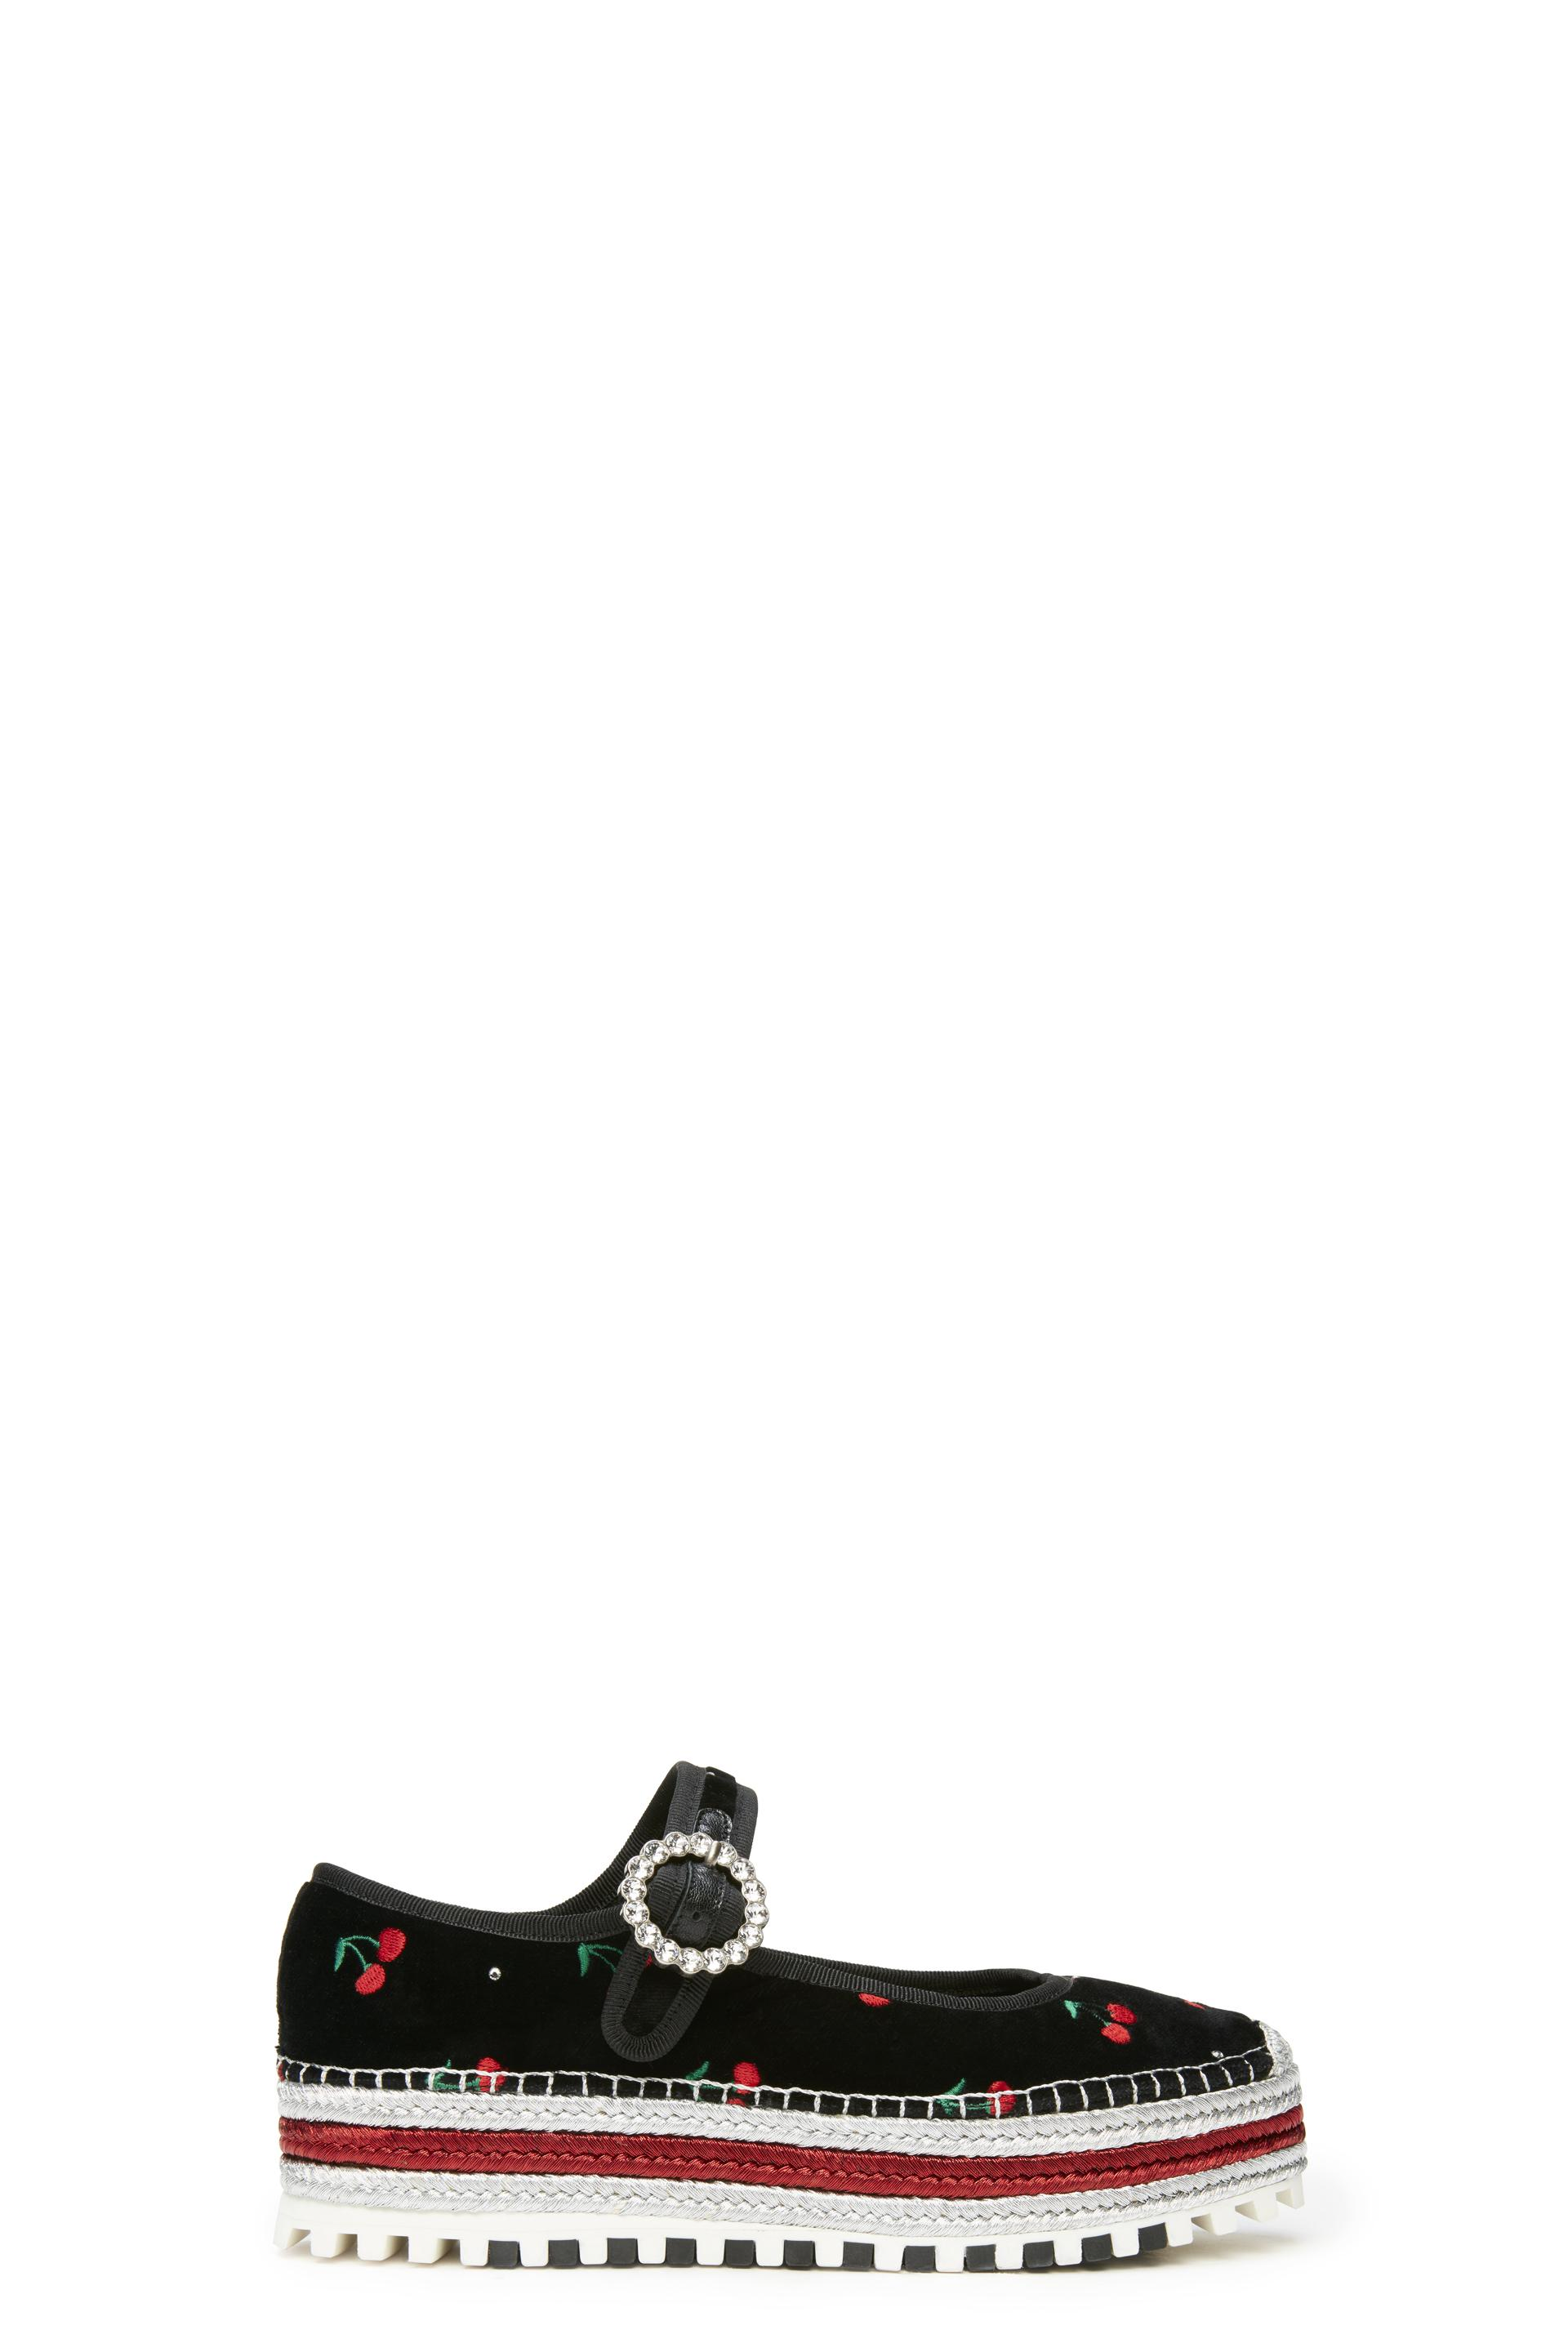 cbdf2af18cf Marc By Marc Jacobs Suzi Cherry-Embroidered Velvet Espadrille Mary Janes In  Black